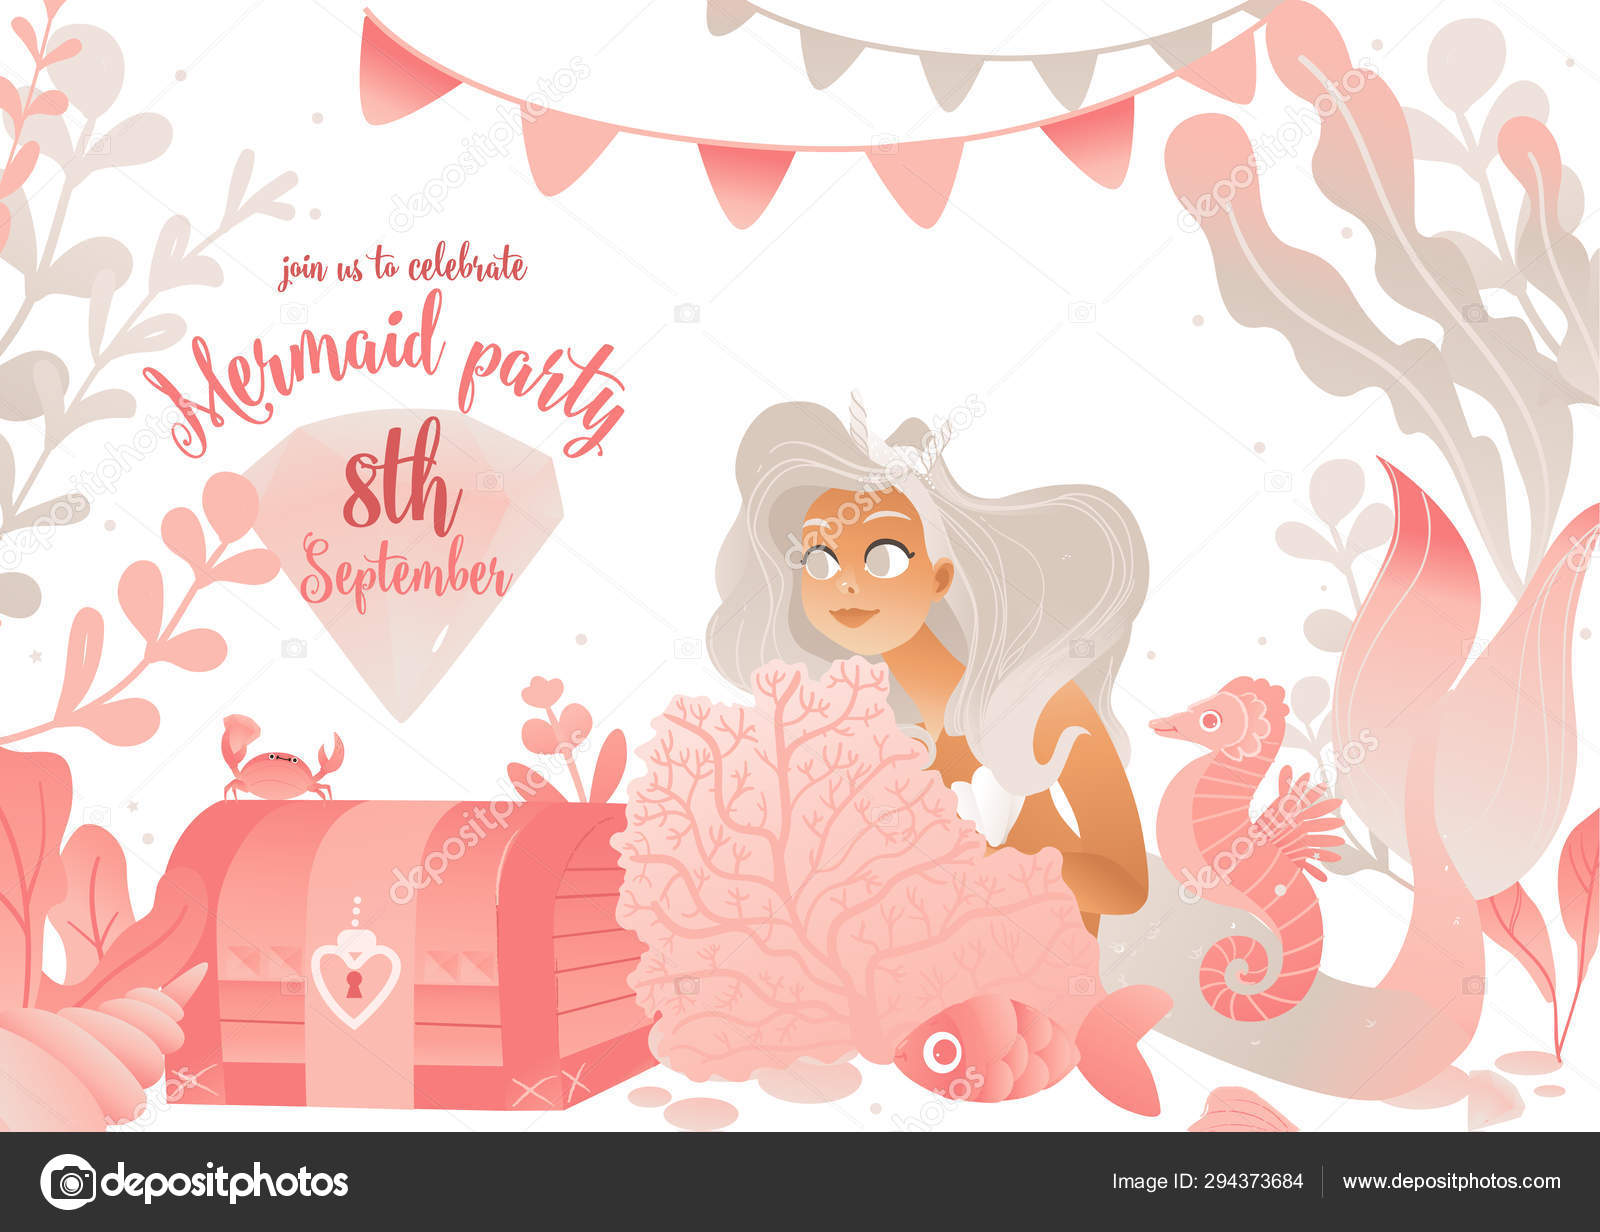 Mermaid Party Invitation Card Template With Cute Sea